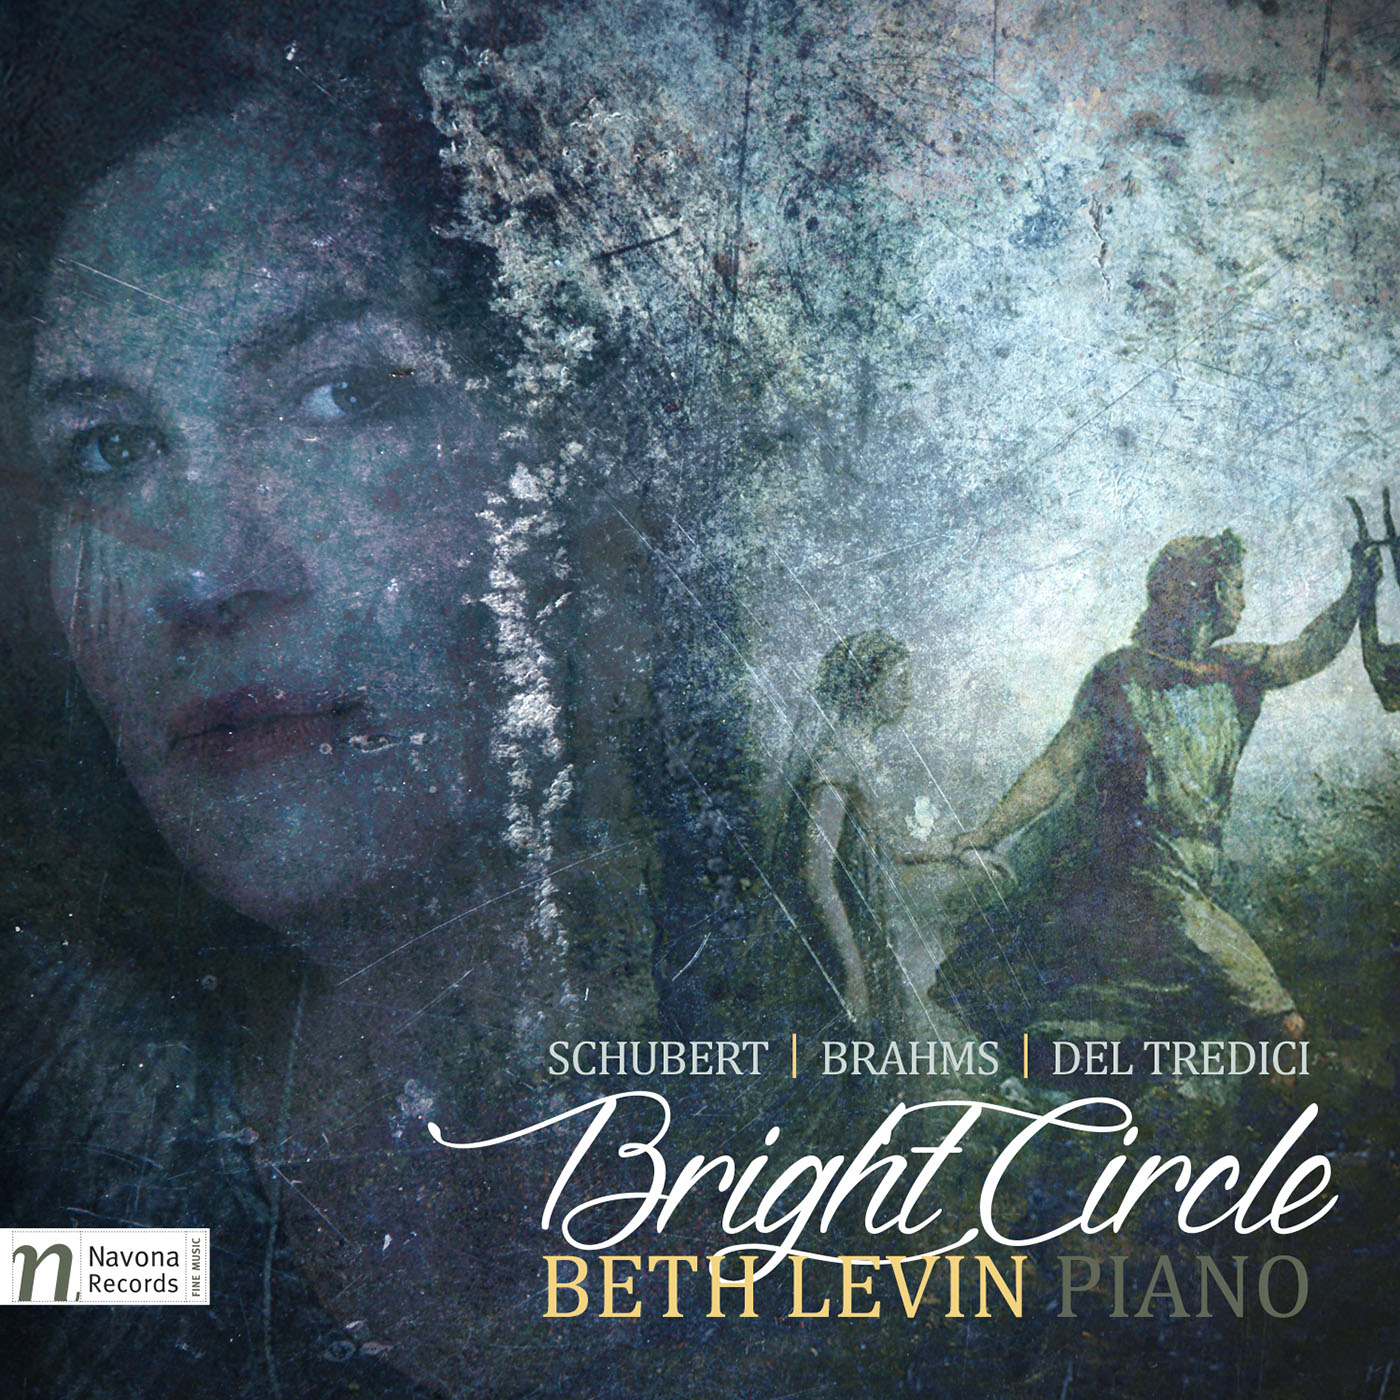 IN REVIEW: Franz Schubert, Johannes Brahms, & David Del Tredici - BRIGHT CIRCILE (Navona Records NV6074)